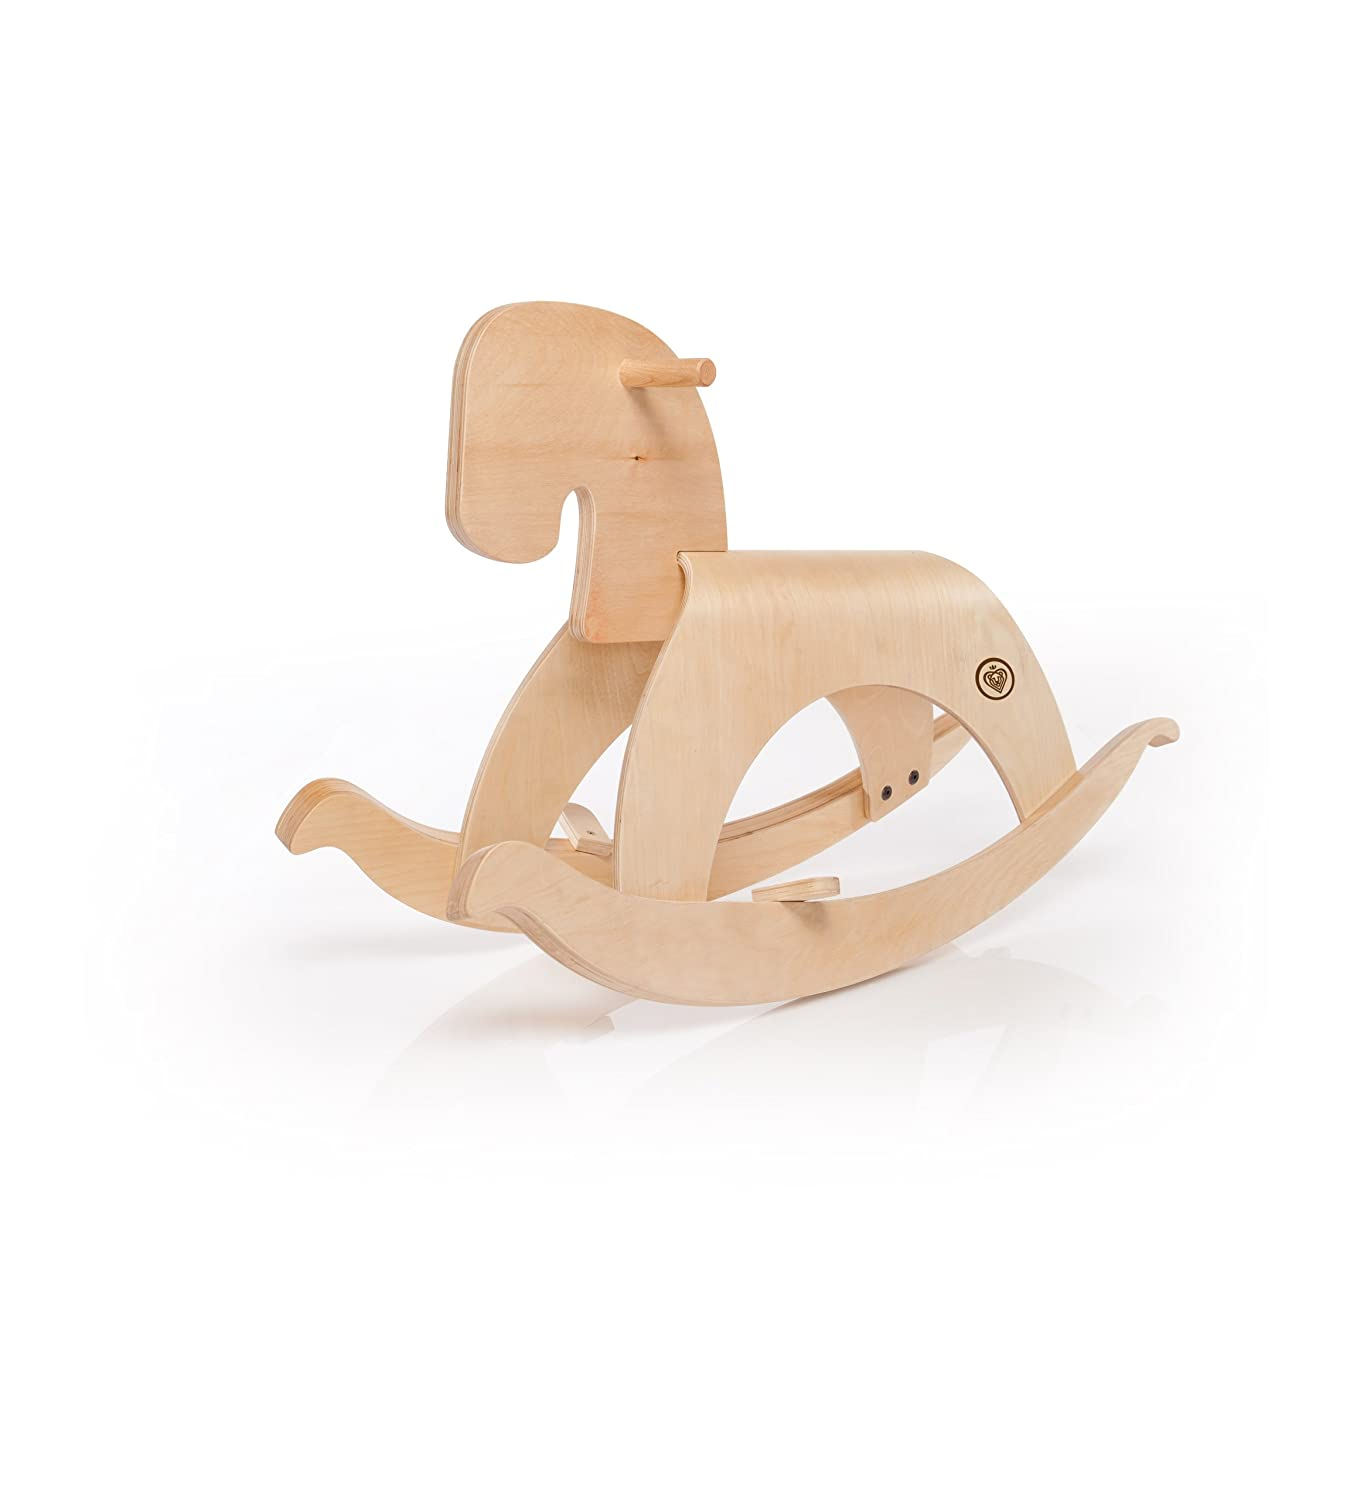 amazoncom  prince lionheart woody the rocking horse tan wood  - amazoncom  prince lionheart woody the rocking horse tan wood(discontinued by manufacturer)  push and pull baby toys  baby